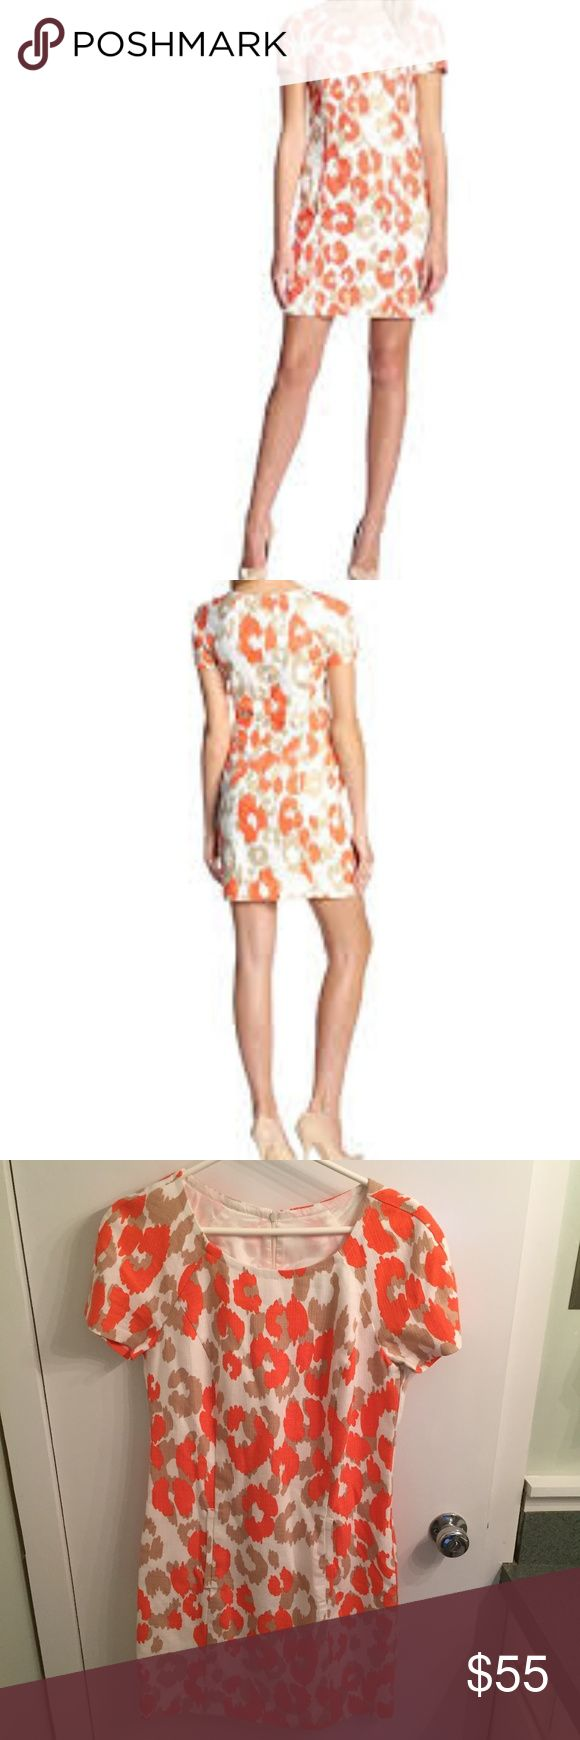 Trina Turk Merced short sleeved shift dress Trina Turk Merced dress in a coral/tan/white lynx leopard print. On seam pockets in front. 51% Cotton/49% Modal. Dry Clean Only Short sleeves. Crew neck. Made in USA. Size 6 Trina Turk Dresses